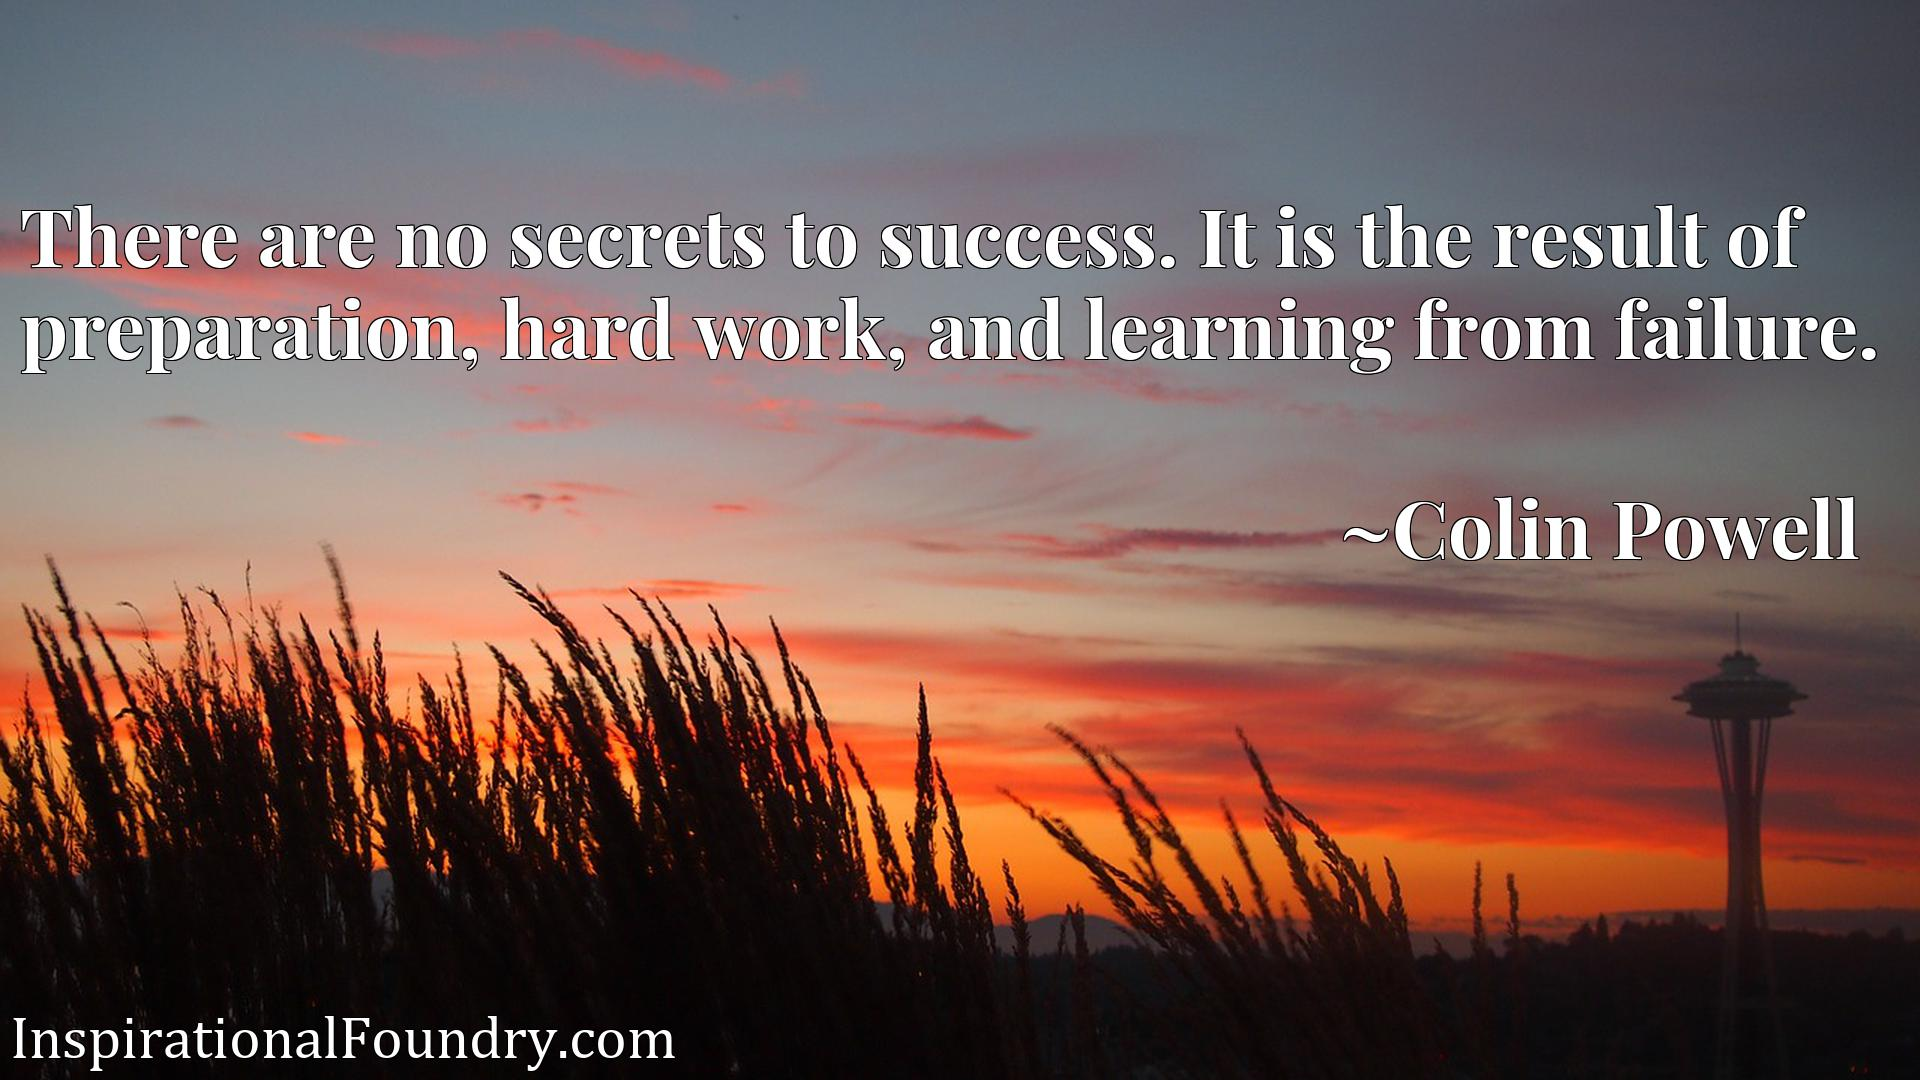 Quote Picture :There are no secrets to success. It is the result of preparation, hard work, and learning from failure.